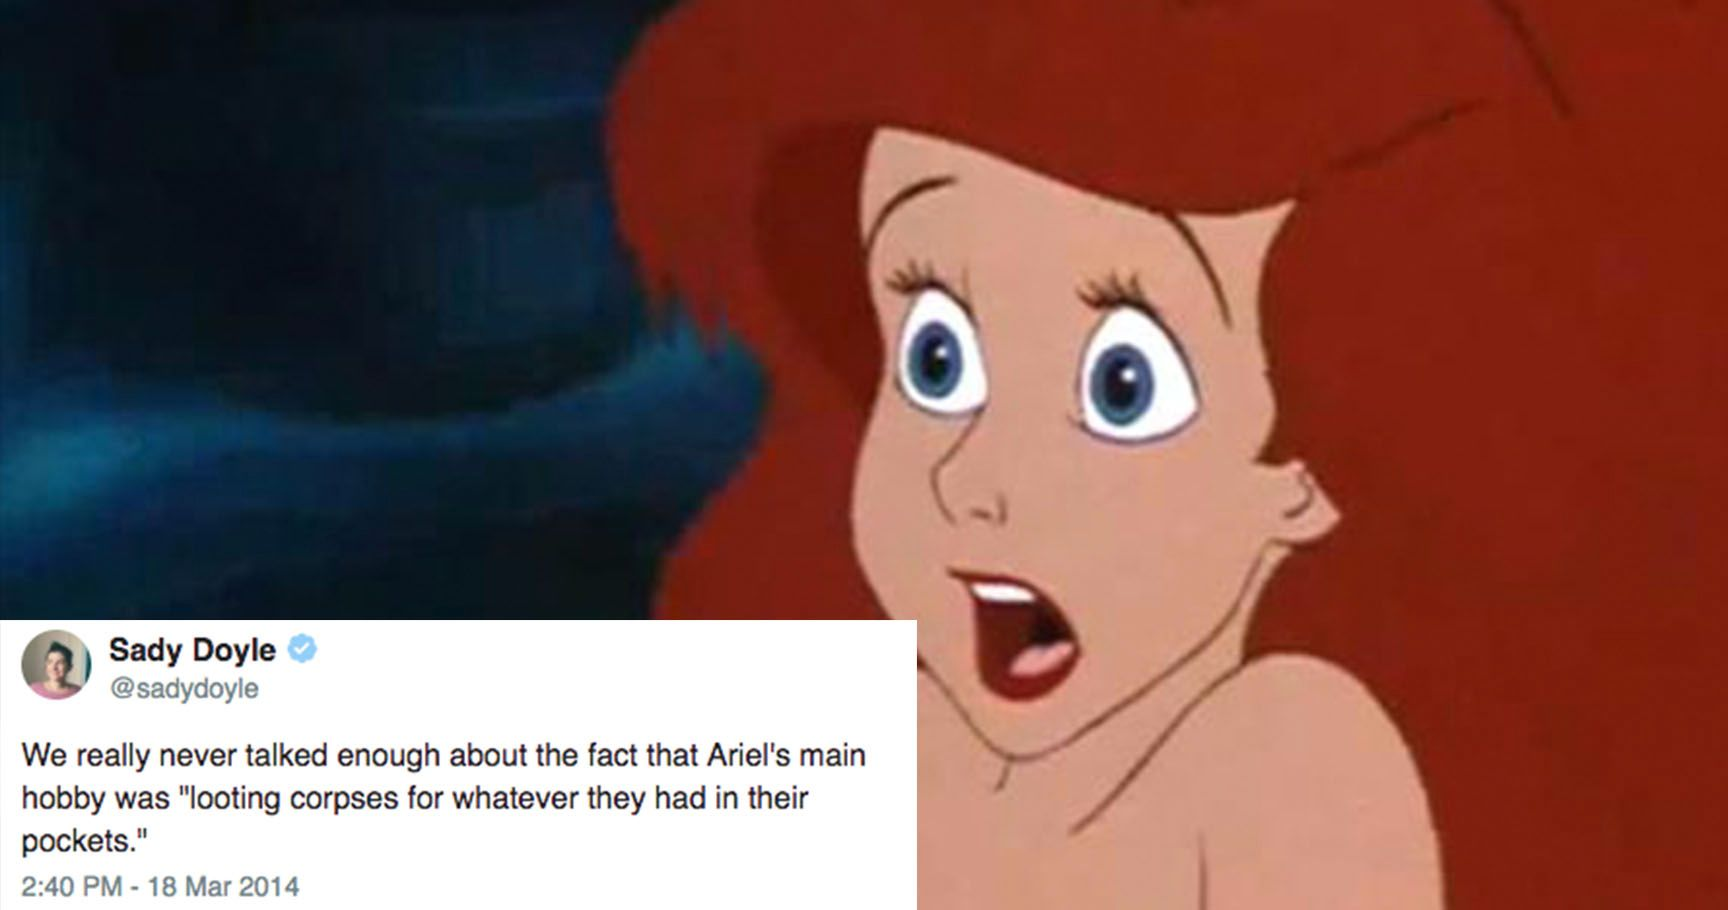 15 Outrageous Disney Tweets That Actually Make A Good Point